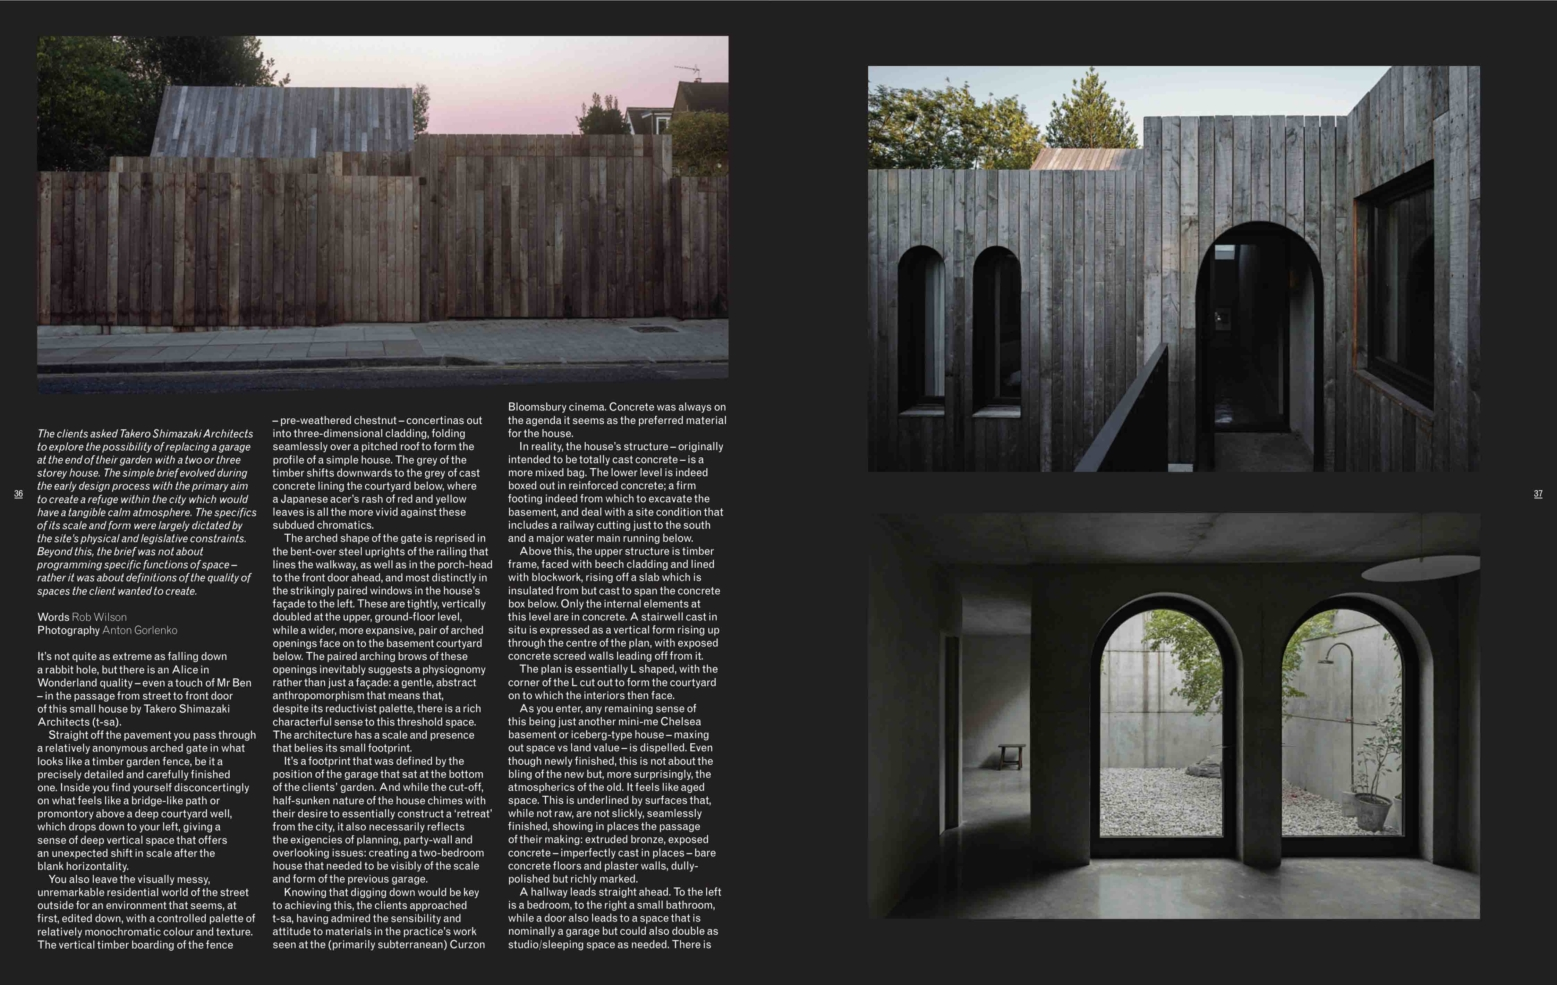 t-sa_Tiverton_Architects Journal_02